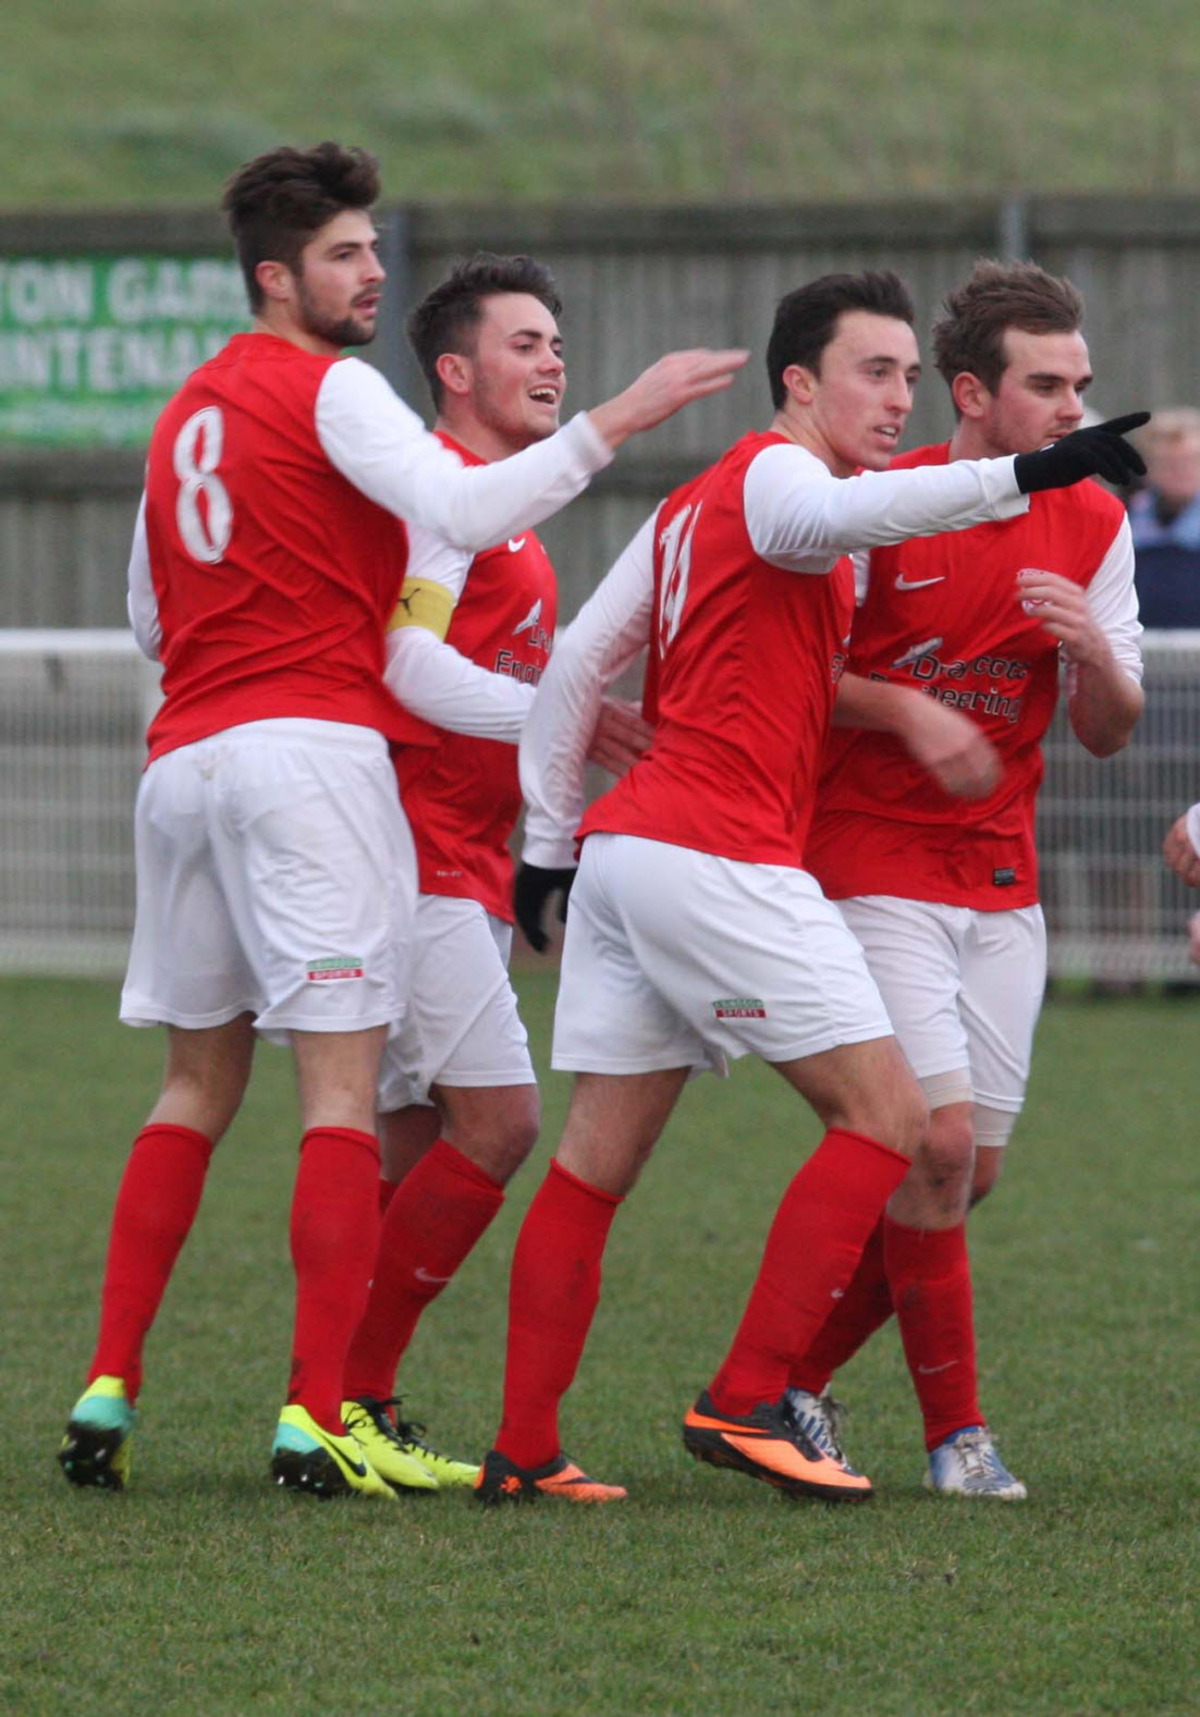 Ben Whitehead (second right) celebrates scoring Didcot Town's first goal